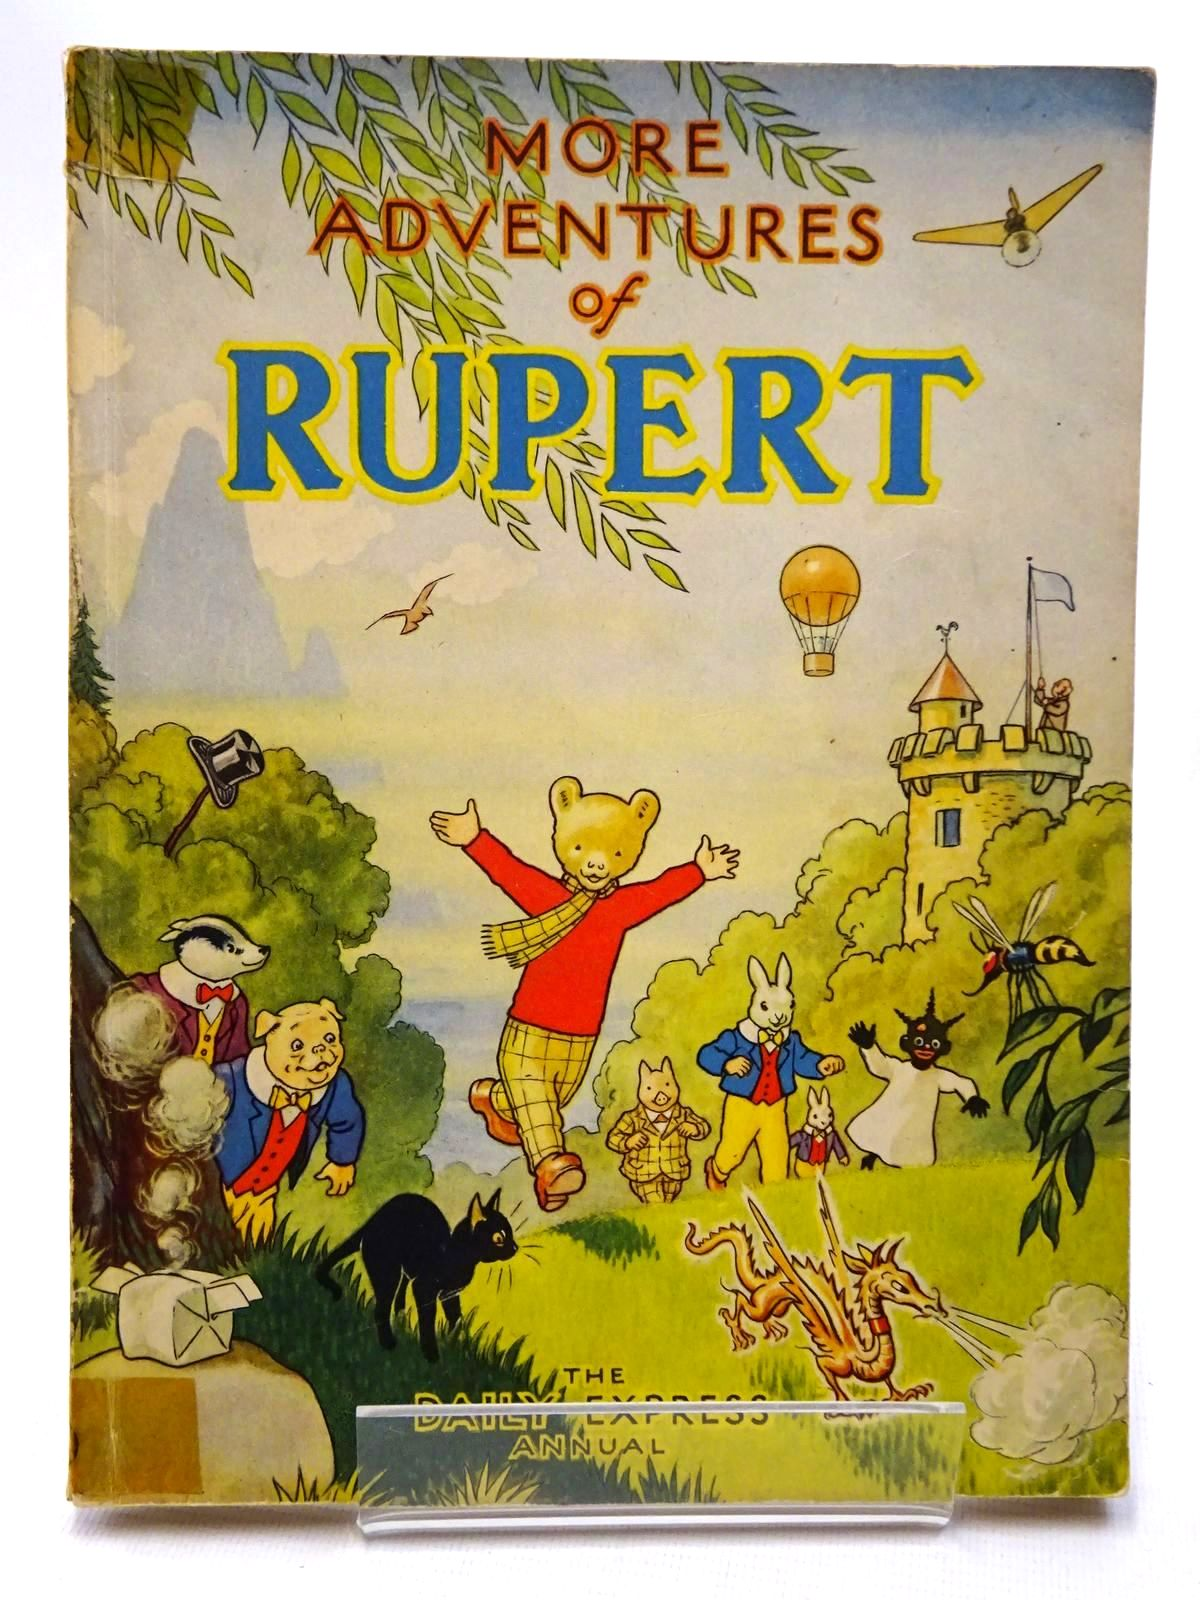 Photo of RUPERT ANNUAL 1947 - MORE ADVENTURES OF RUPERT written by Bestall, Alfred illustrated by Bestall, Alfred published by Daily Express (STOCK CODE: 1610121)  for sale by Stella & Rose's Books